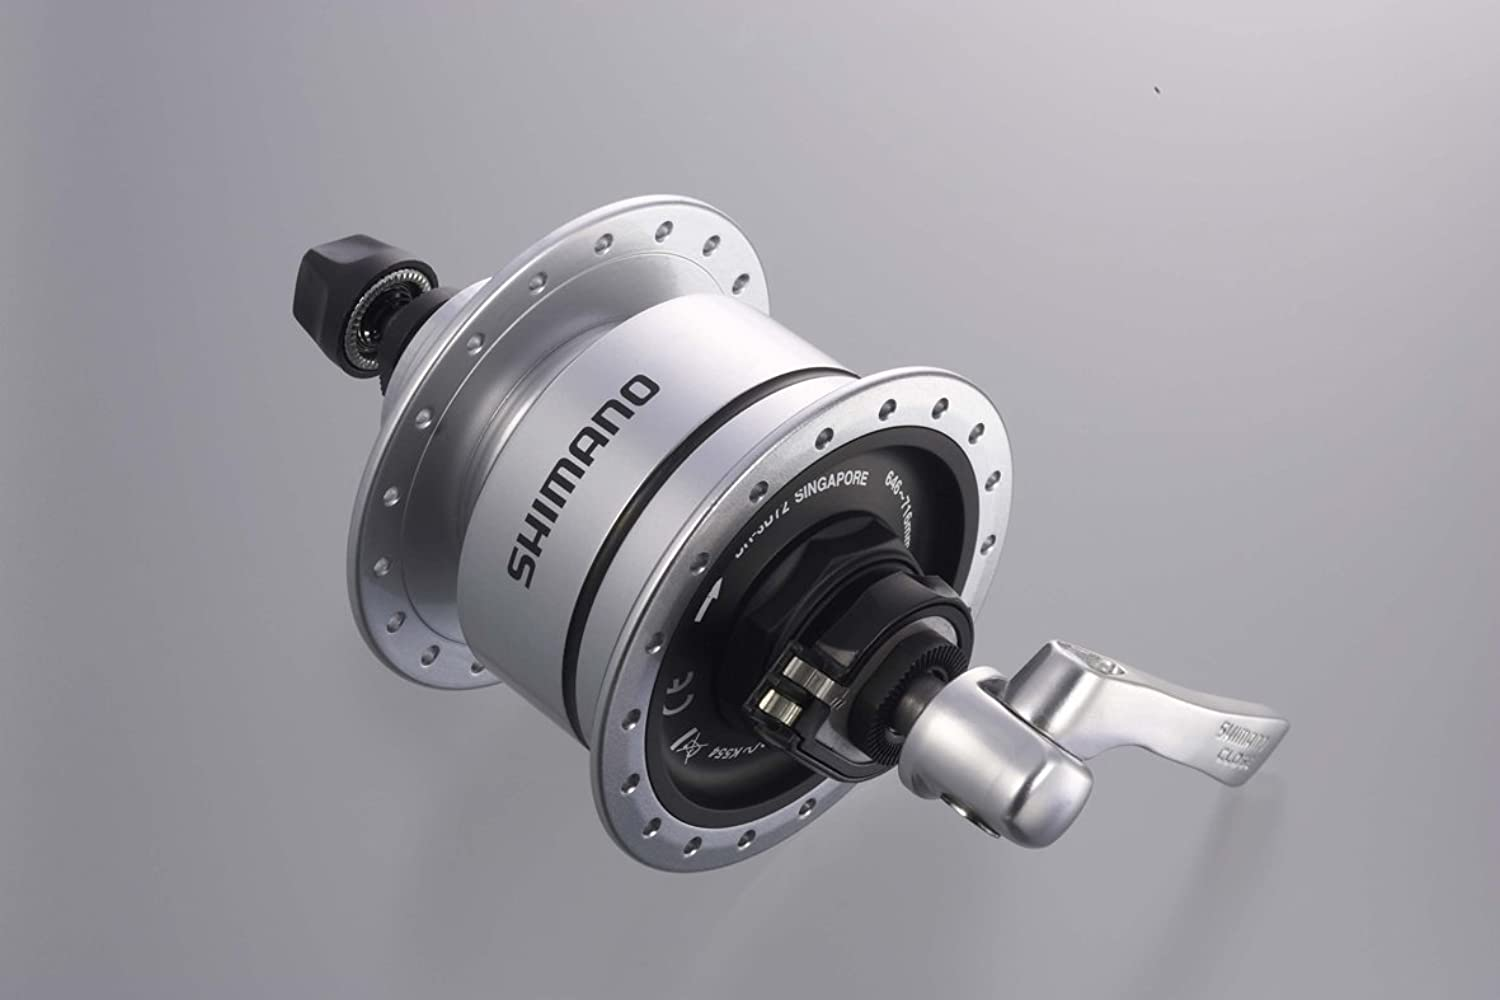 SHIMANO (Shimano) DH3D72 E2 6V3.0W center lock disc corresponding QR type 32H OLD  100mm DH3D72 clear EDH3D72BS